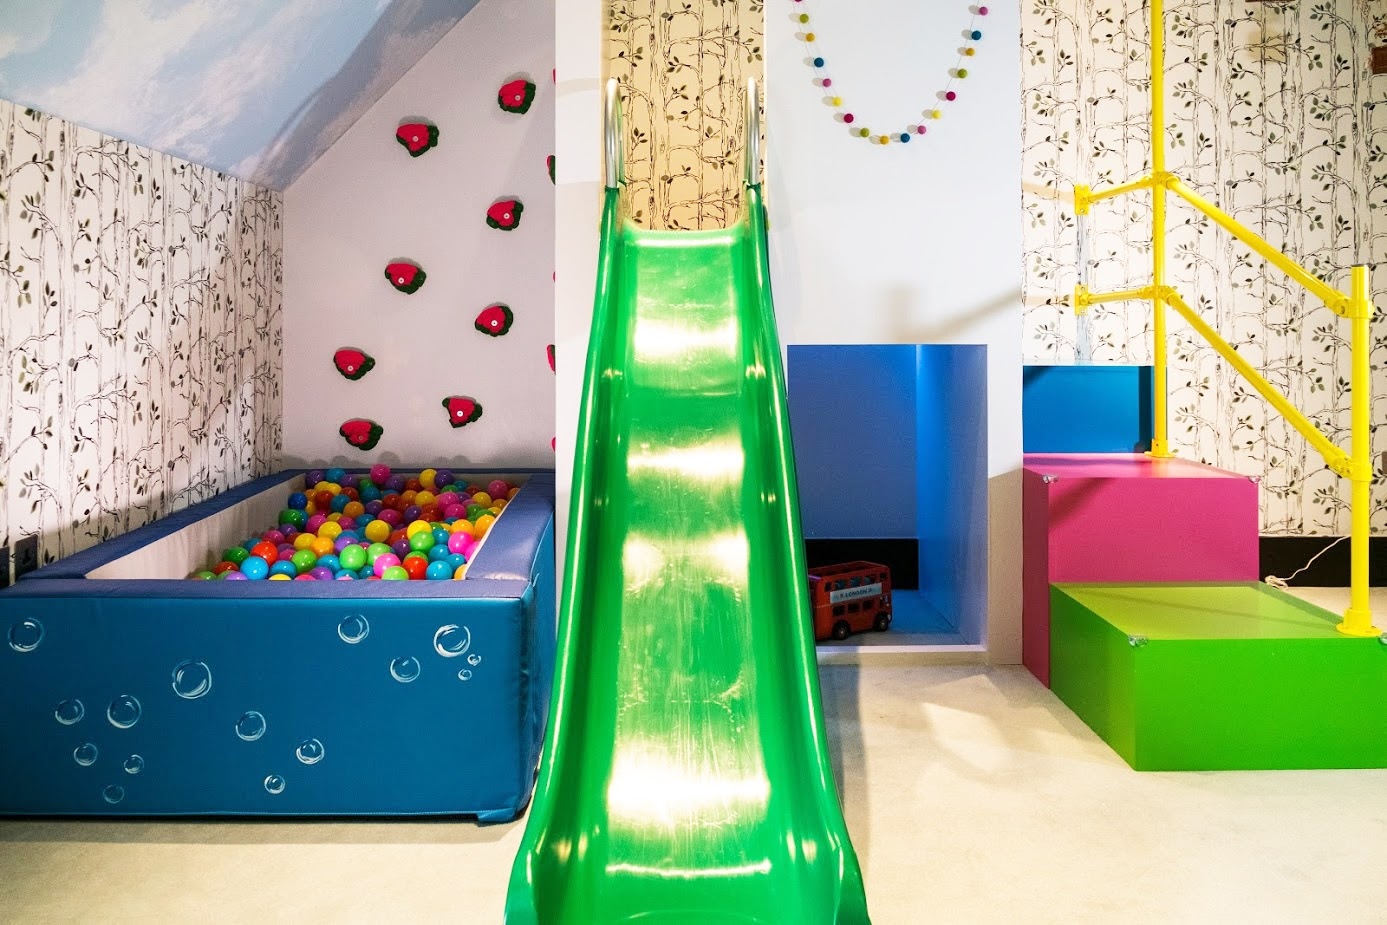 Climbing Wall slide and ball pool